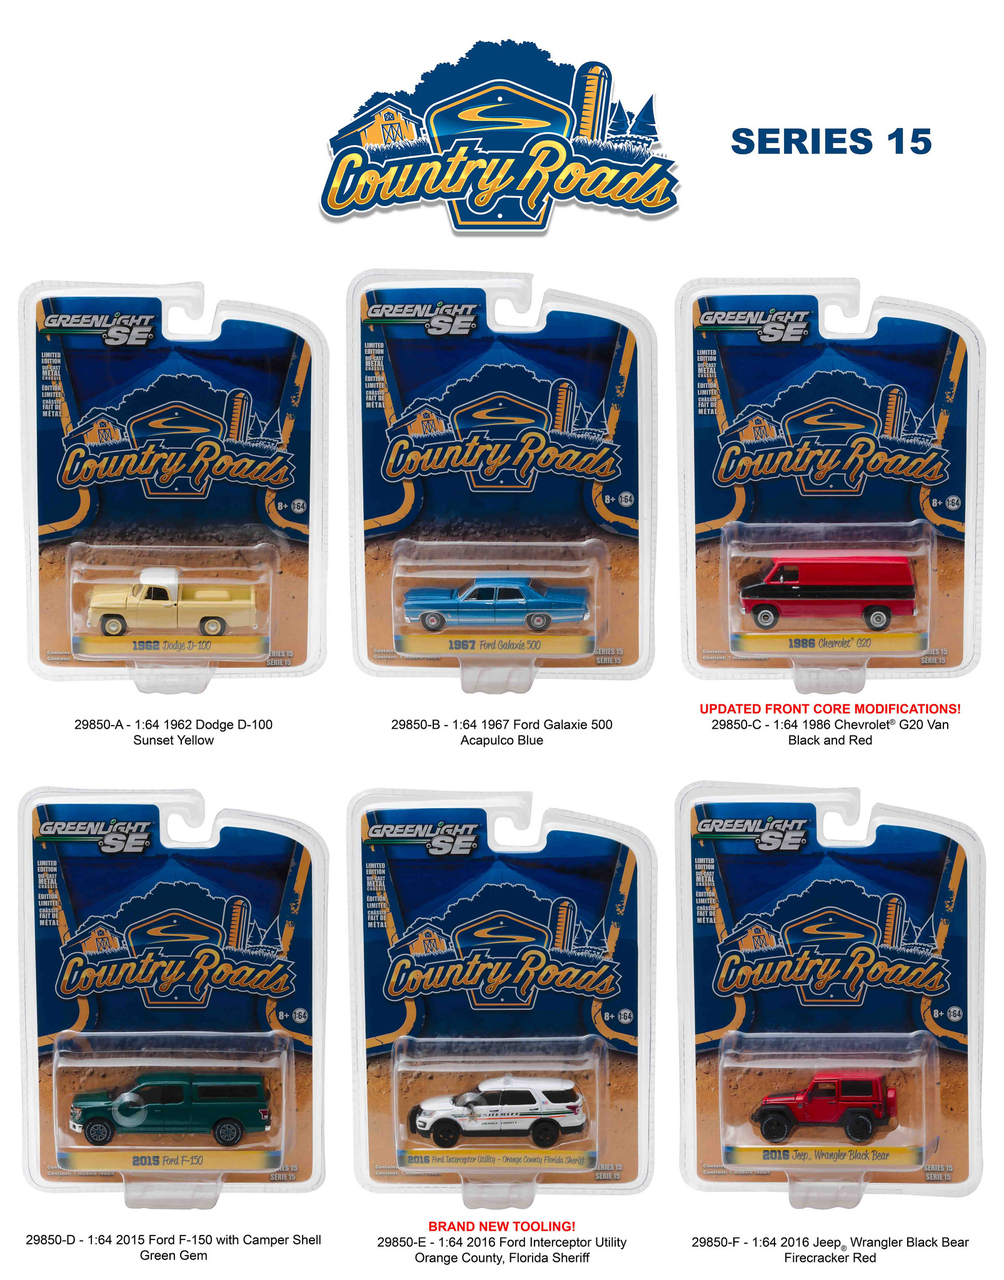 Country Roads / Release 15 6pc Diecast Car Set 1/64 Diecast Model Cars by Greenlight